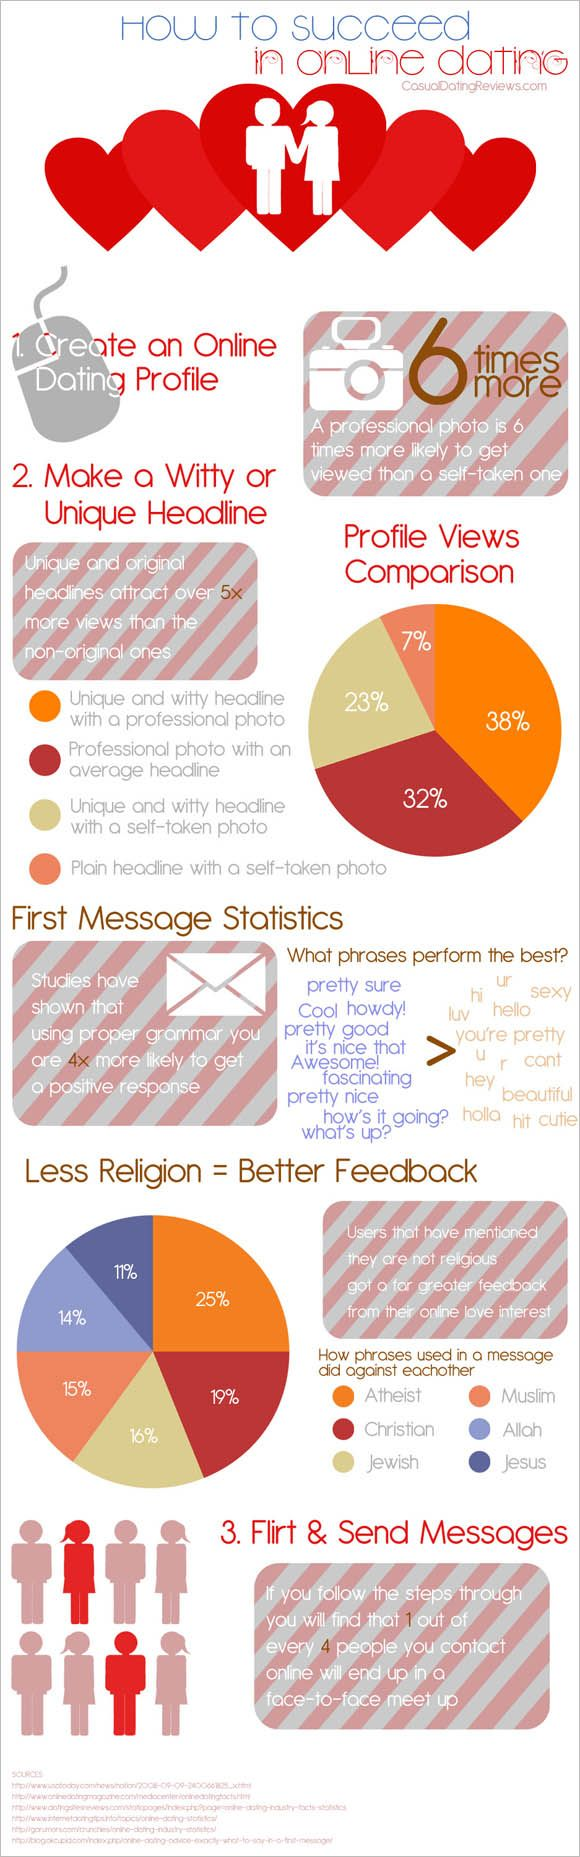 How to succeed in online dating infographic #online dating infographics #infographics on dating #online dating advice for guys